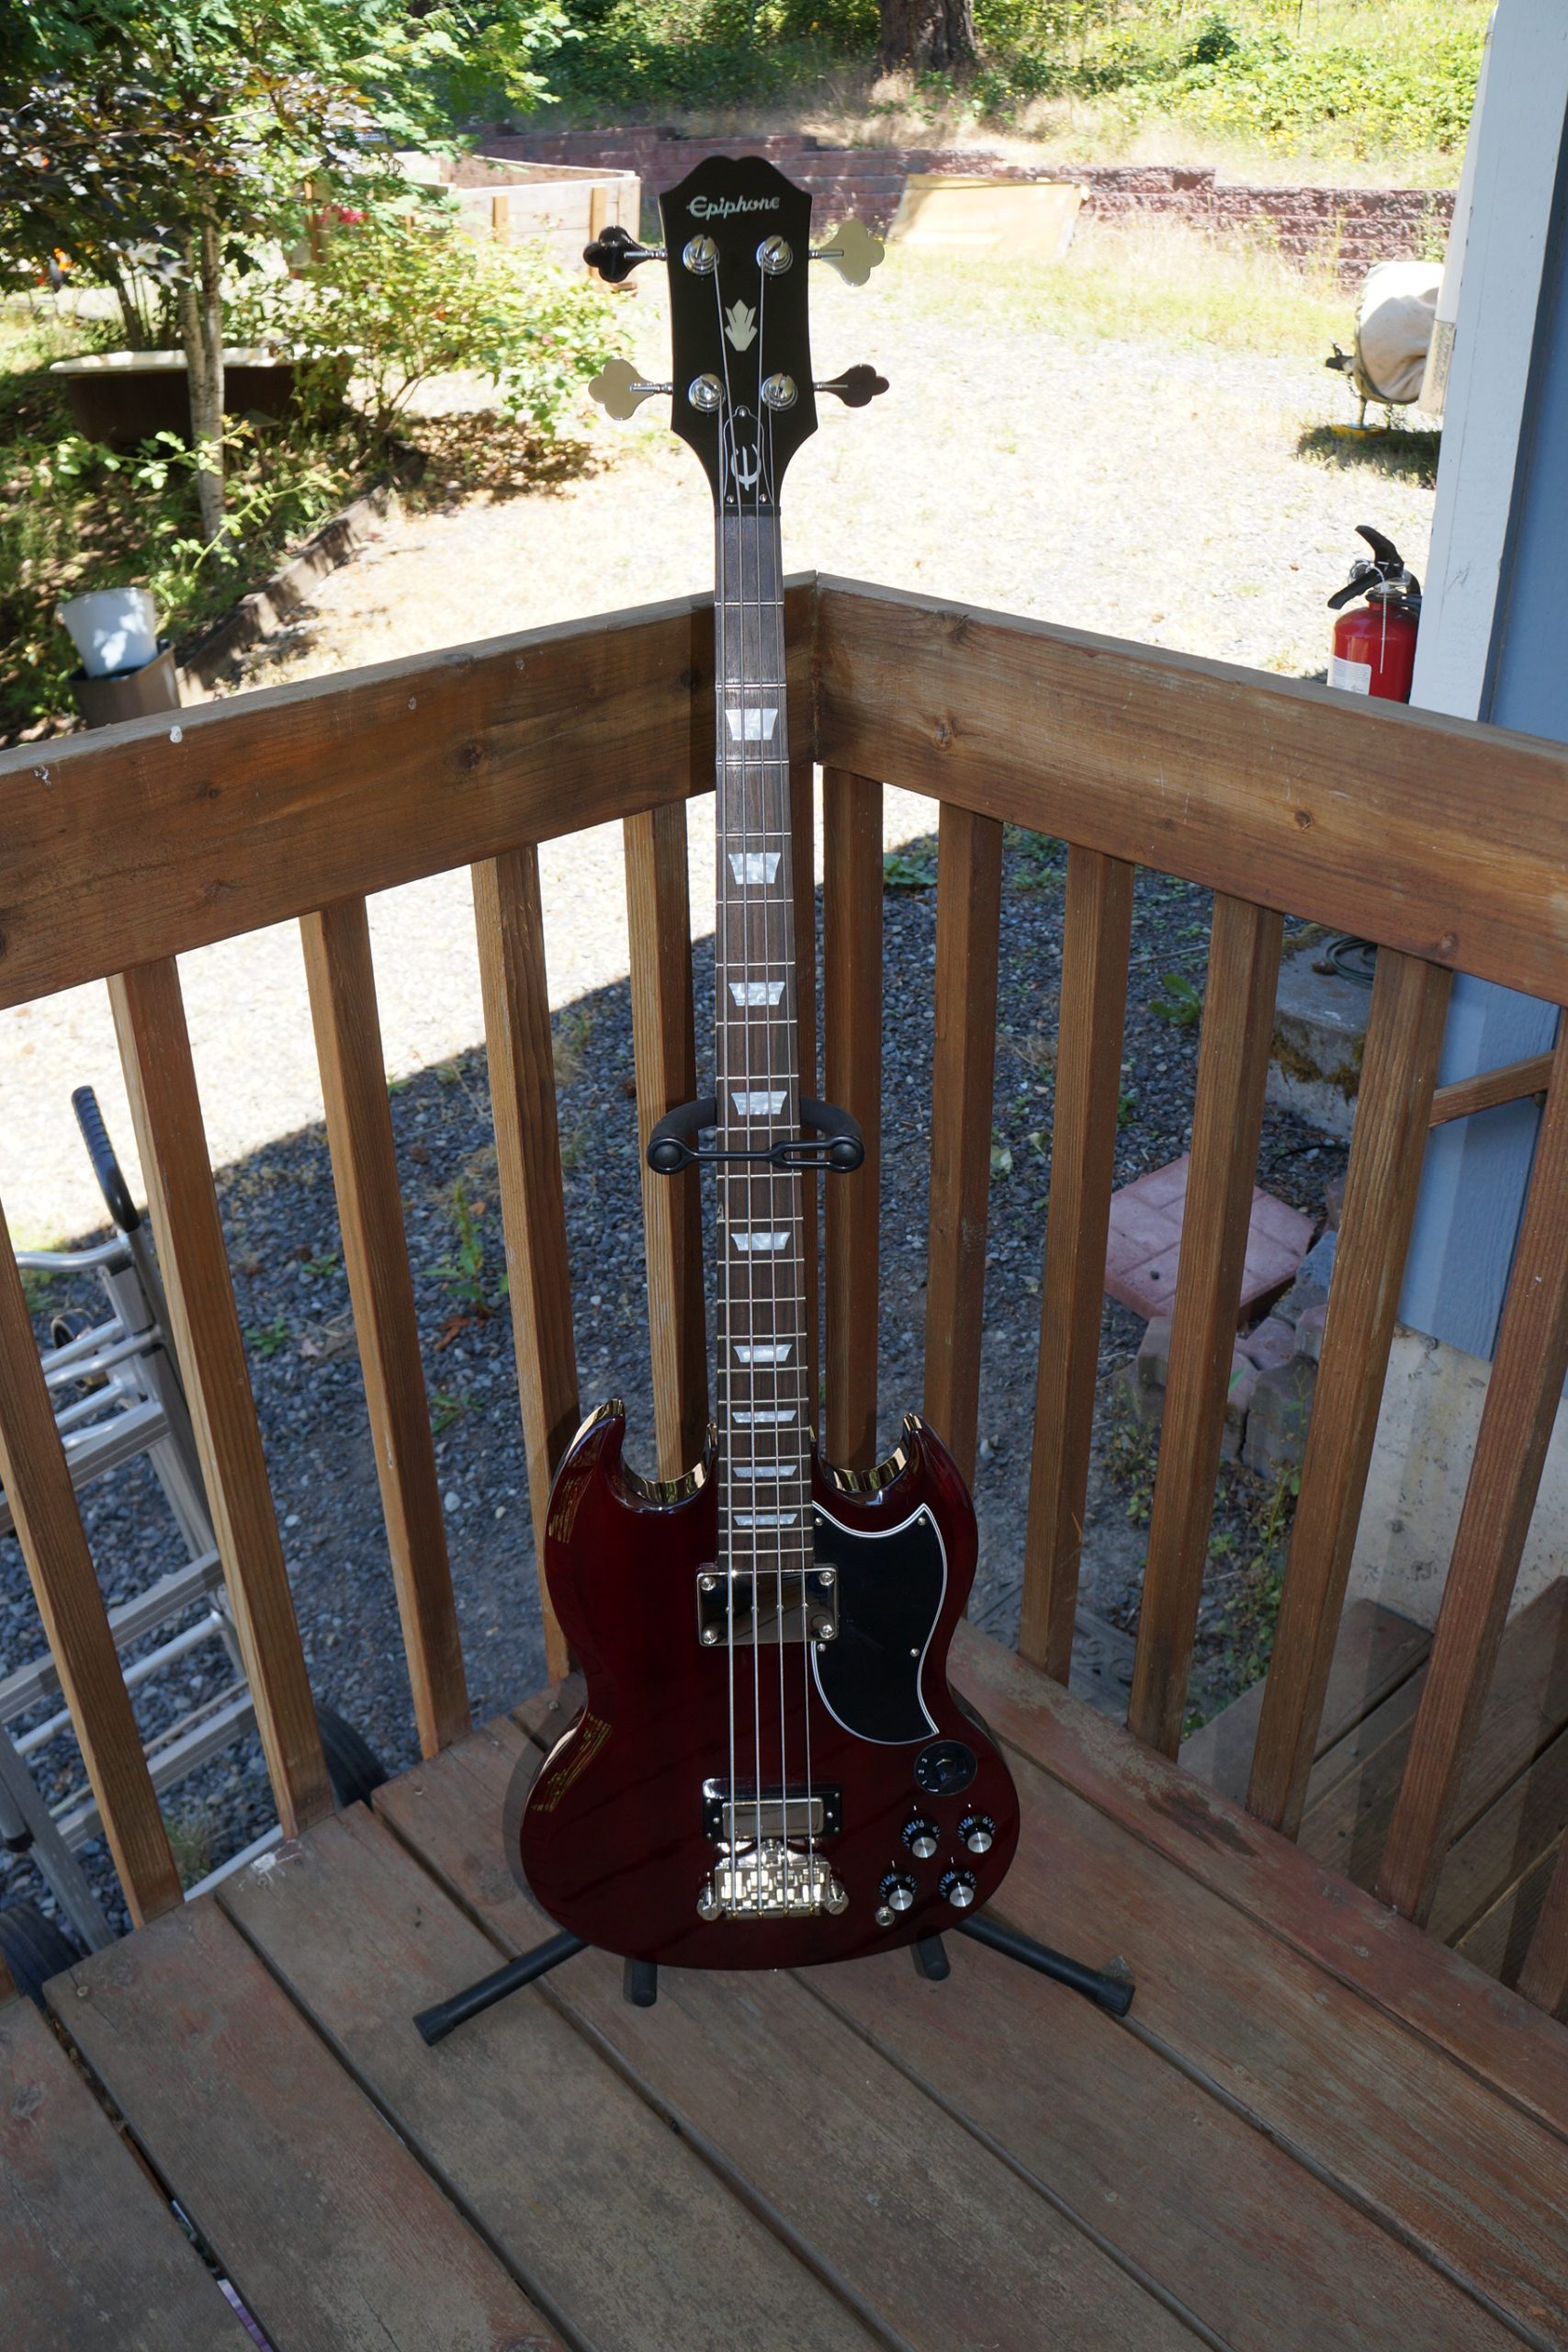 Epiphone 2014 EB3 SG Bass Guitar in Dark Cherry Red – Includes Guardian Gig bag